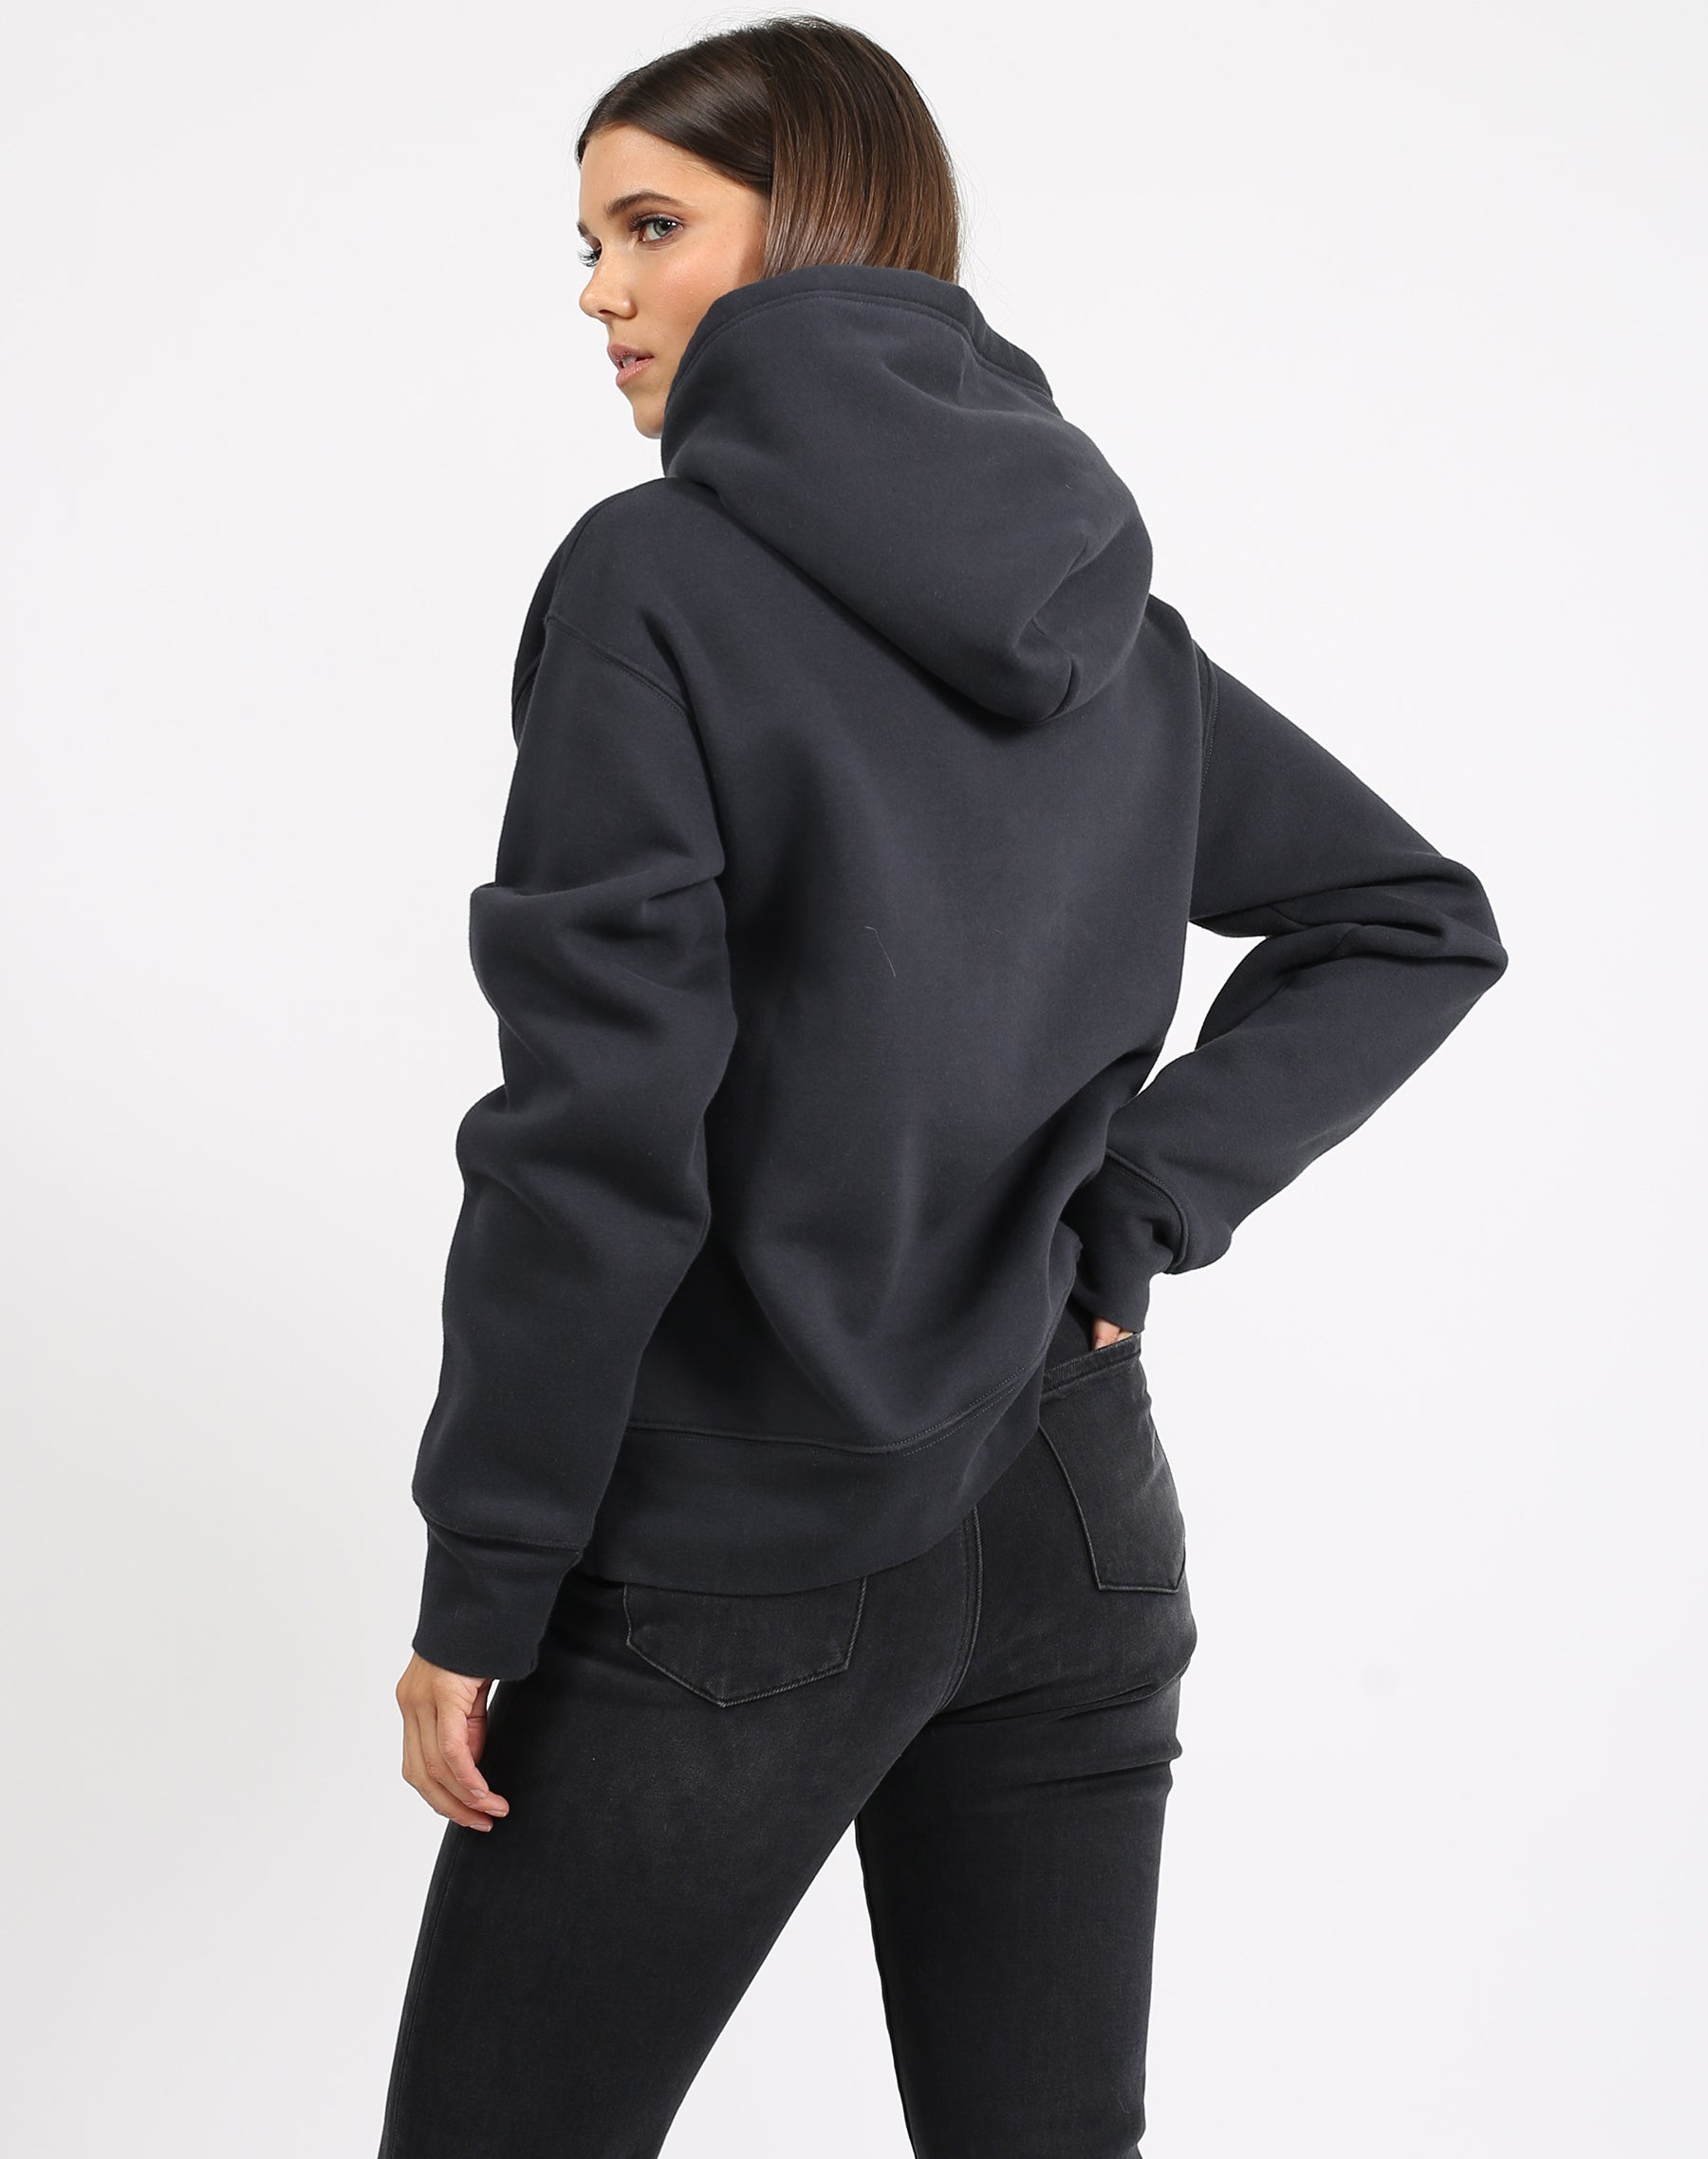 This is a photo of a model wearing the welcome to the babes club step sister hoodie in charcoal by brunette the label.